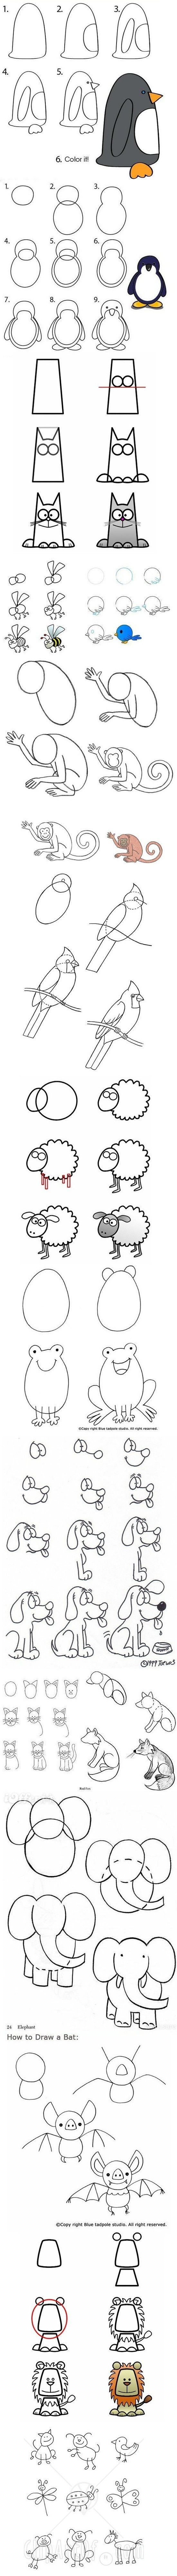 Even though I love crafts, I am awful at drawing animals so I love this simple tutorial. Cute and easy- doesn't get better than that!